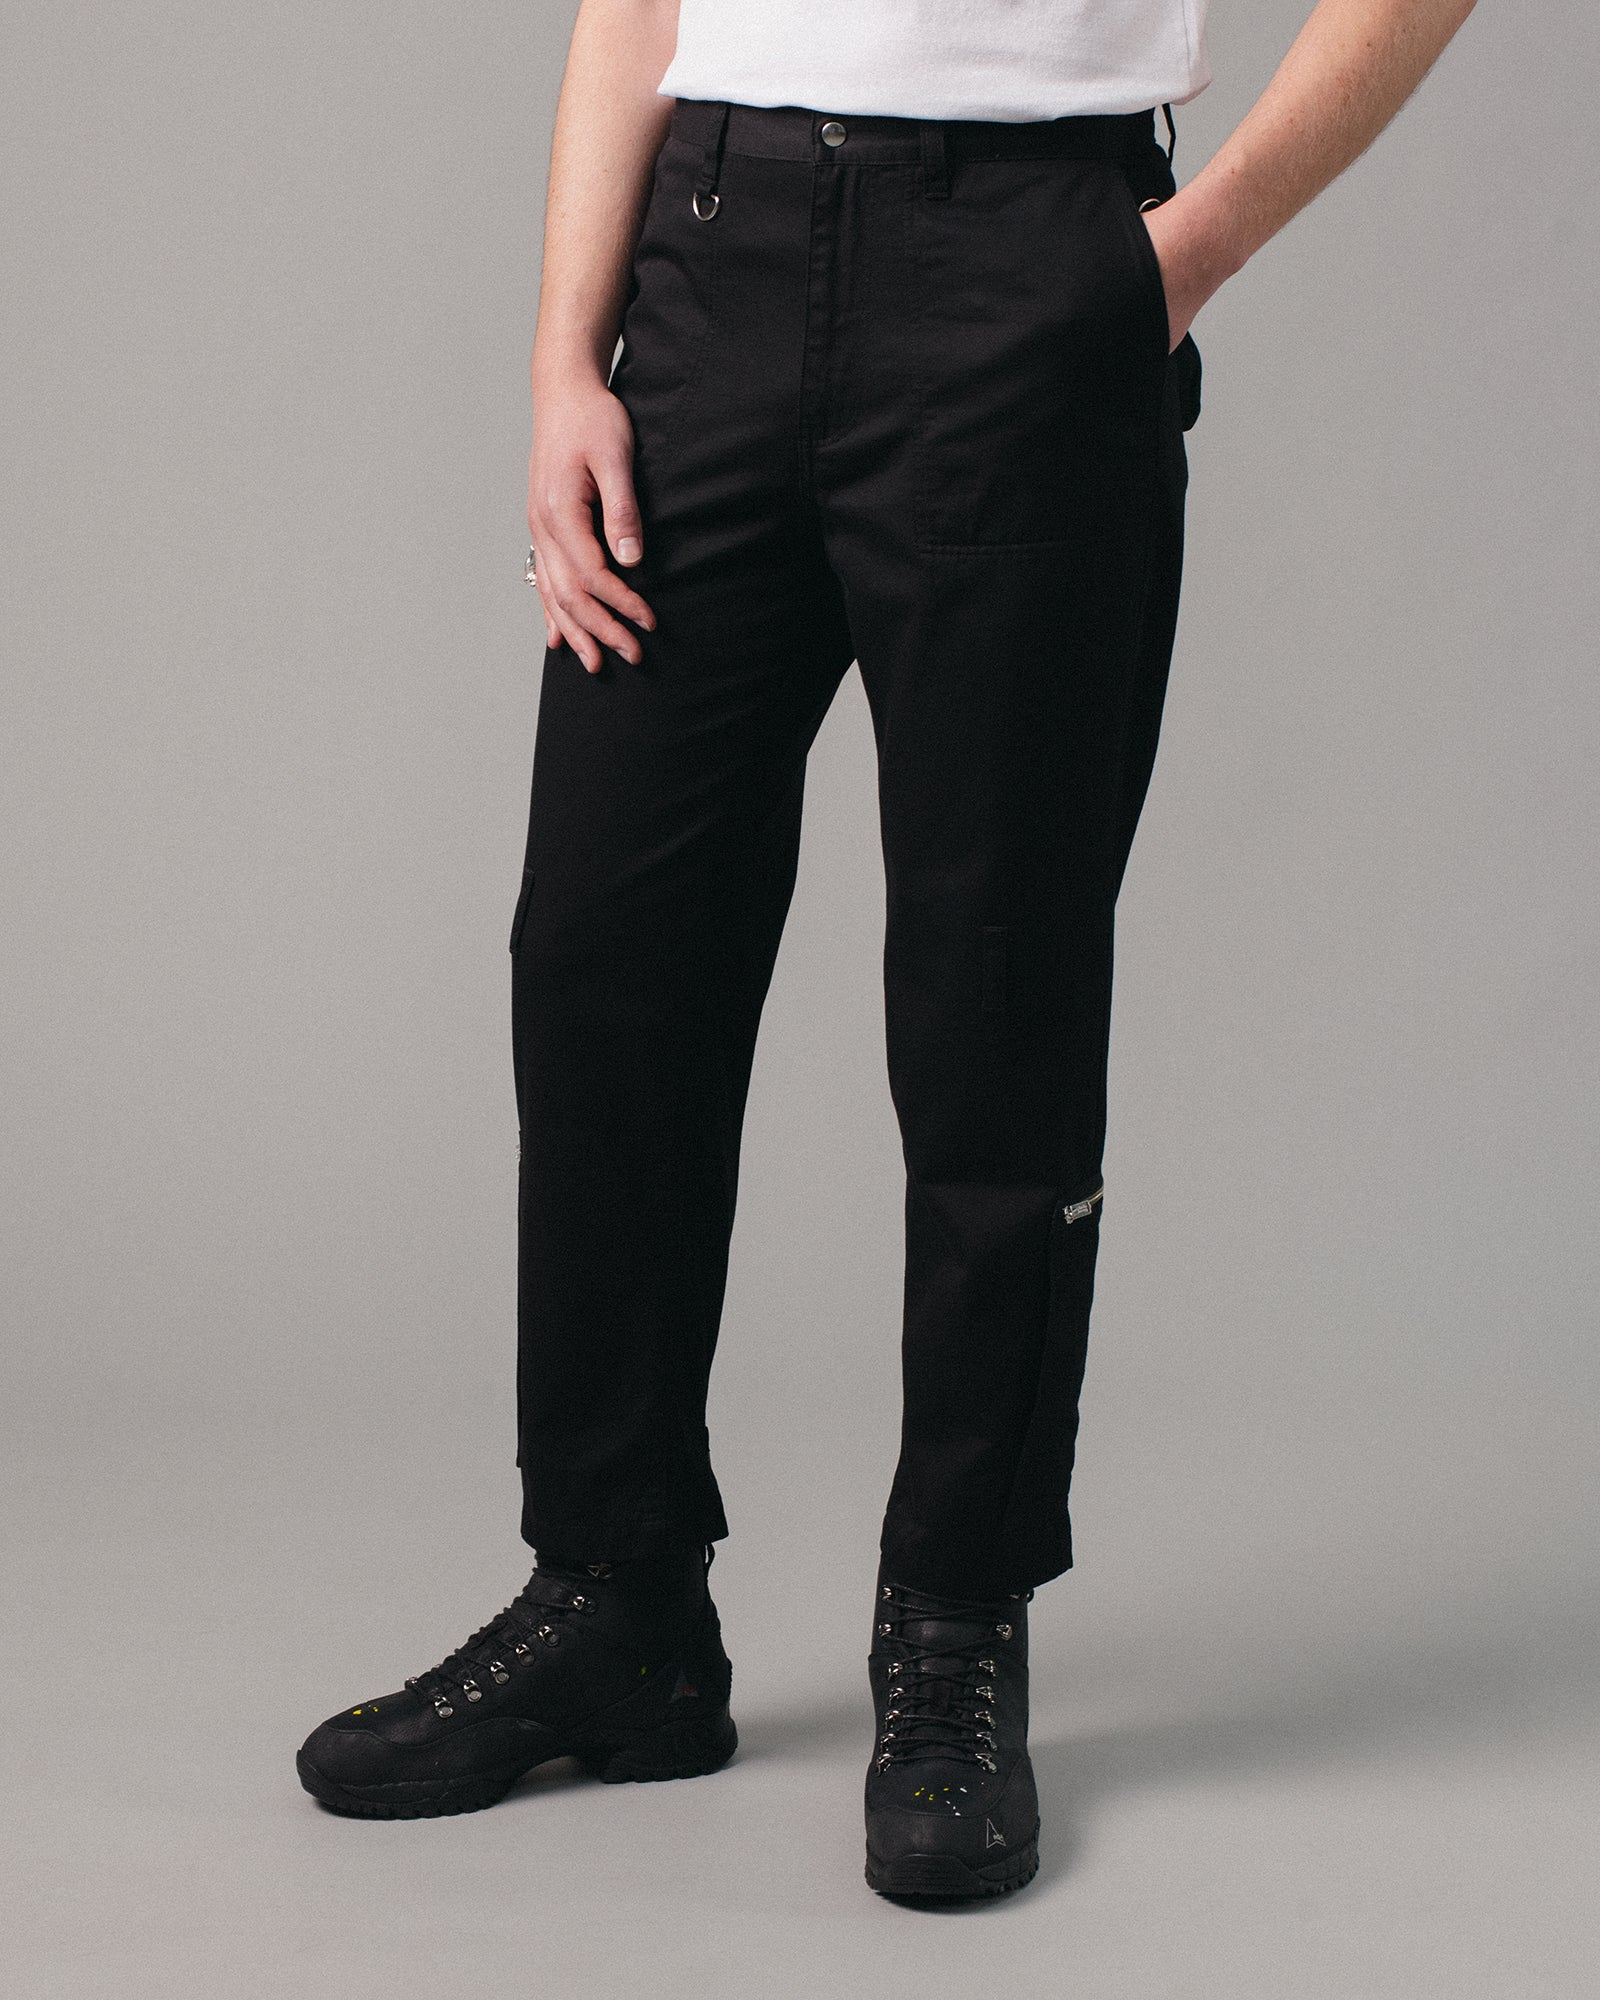 Zipper Detail Pant Black